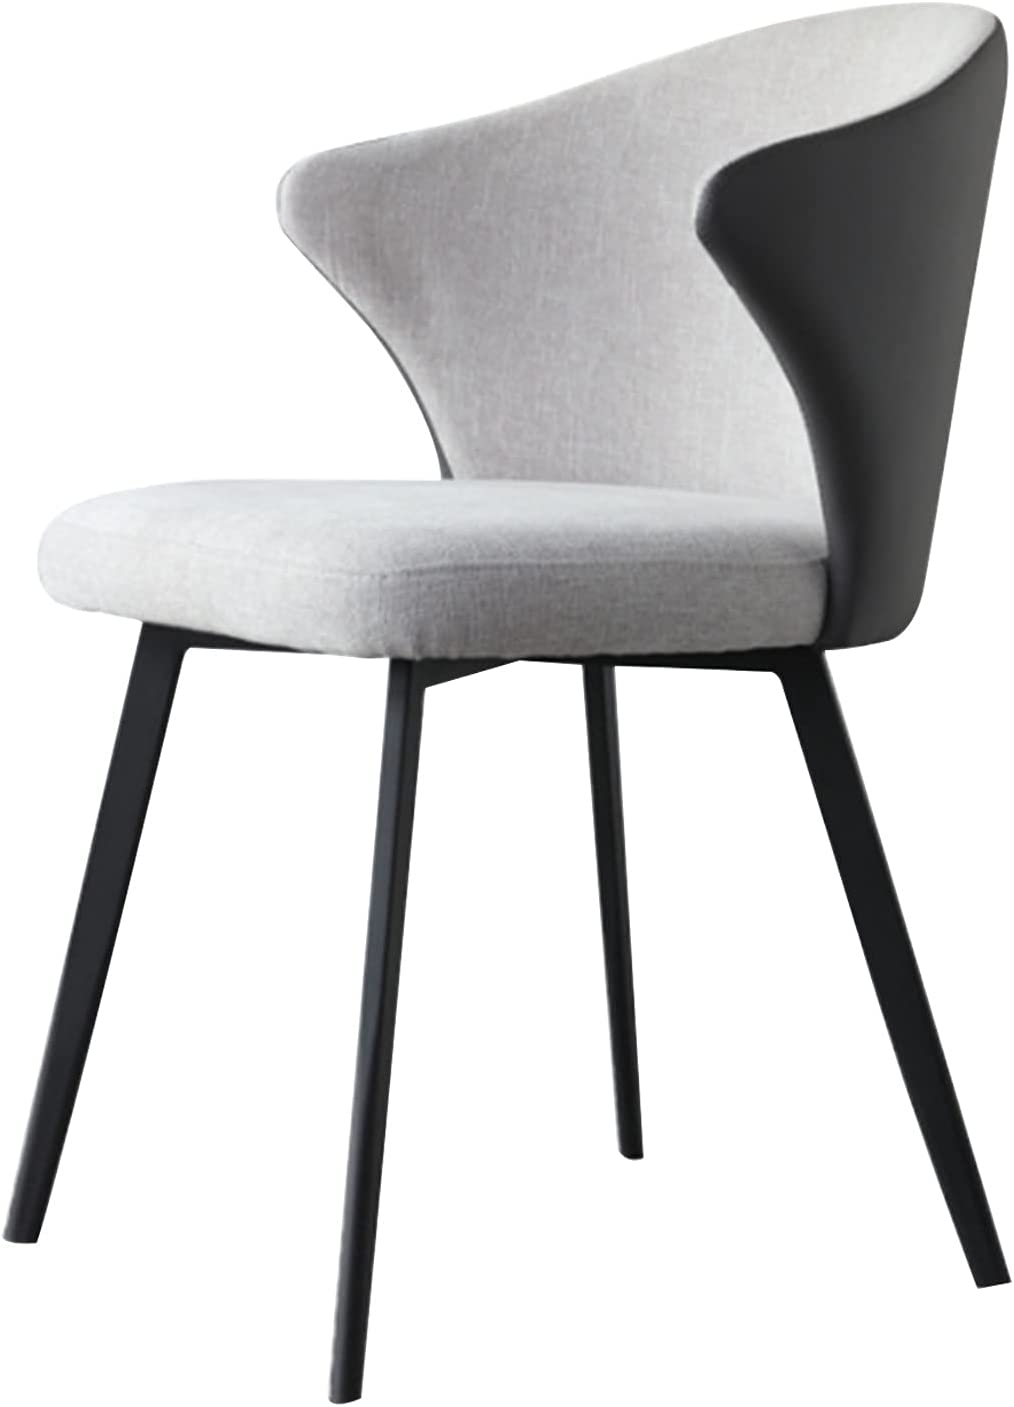 San Diego Mall WYGK Kitchen Dining Chair Cotton Latest item Balco Small Apartment Linen and